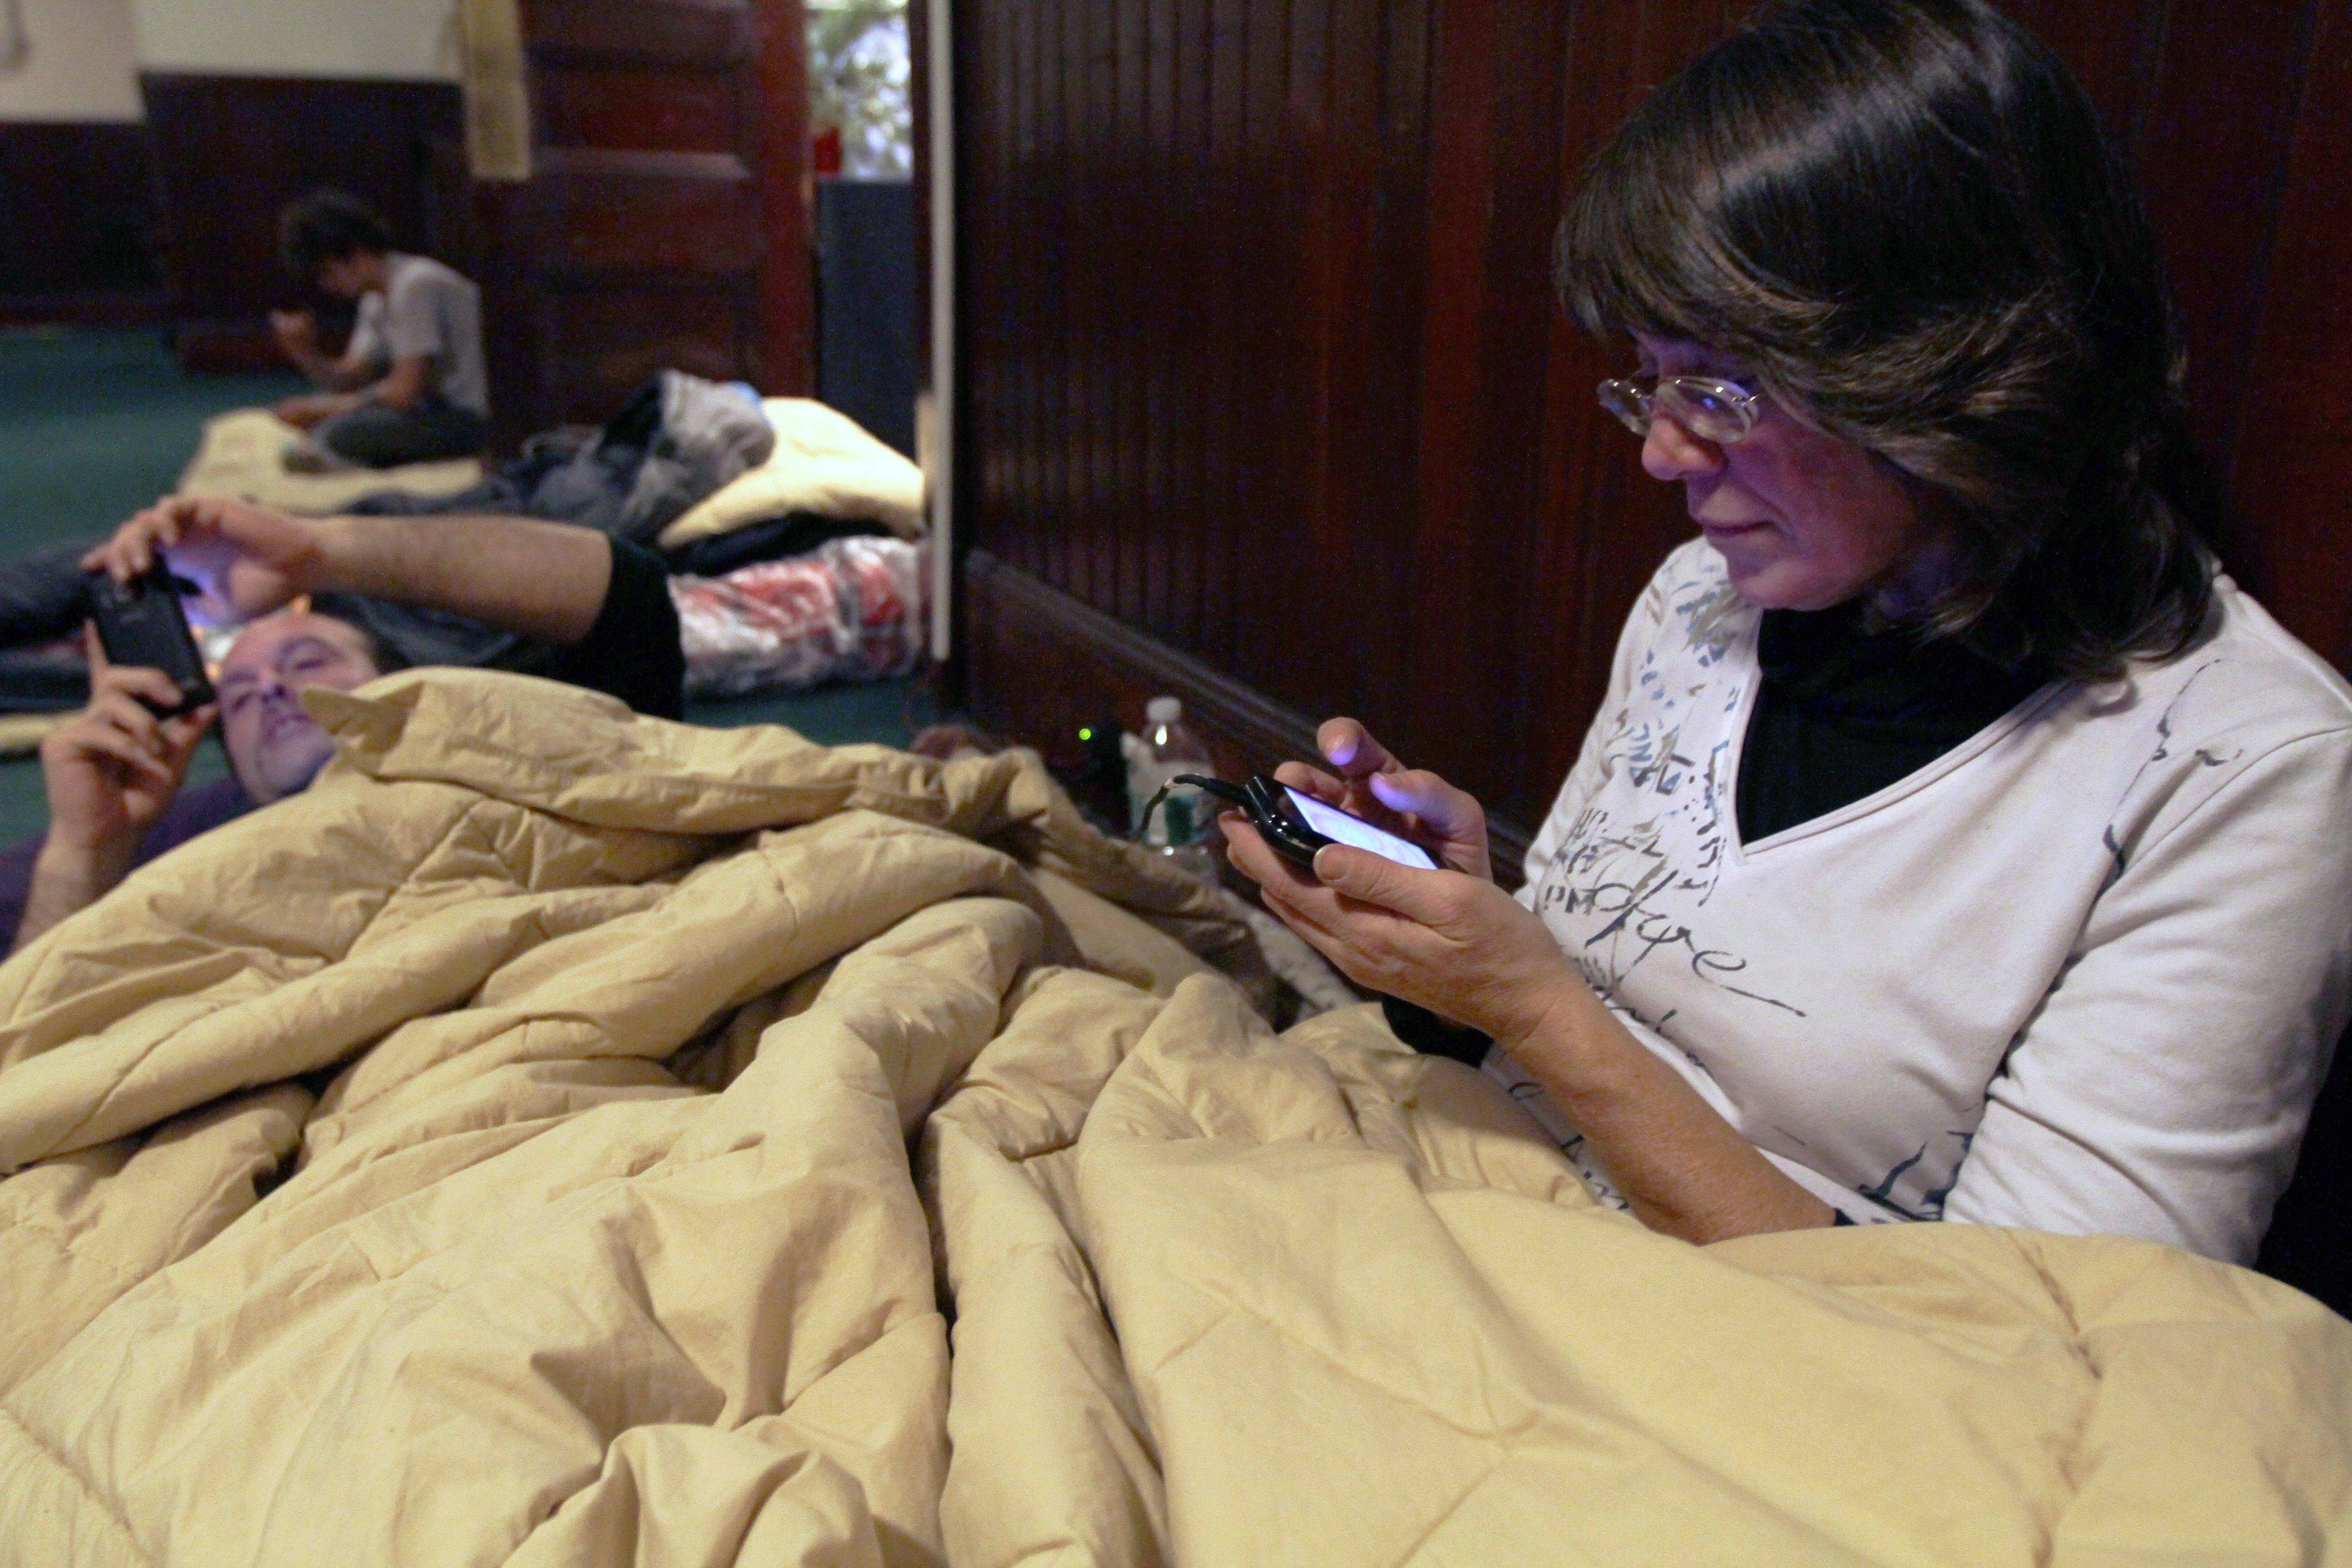 Donna Marinelli, of New Britain, Conn., foreground, and her cousin David Monarca, use their phones as they spend the night in a church space being funded by Occupy Wall Street for Occupy Wall Street protesters at the West Park Presbyterian Church in New York, Wednesday Jan. 11, 2012. The refugees from Manhattanís Zuccotti Park had found their way to the cavernous Presbyterian church, hoping to stay for a few nights, maybe longer.